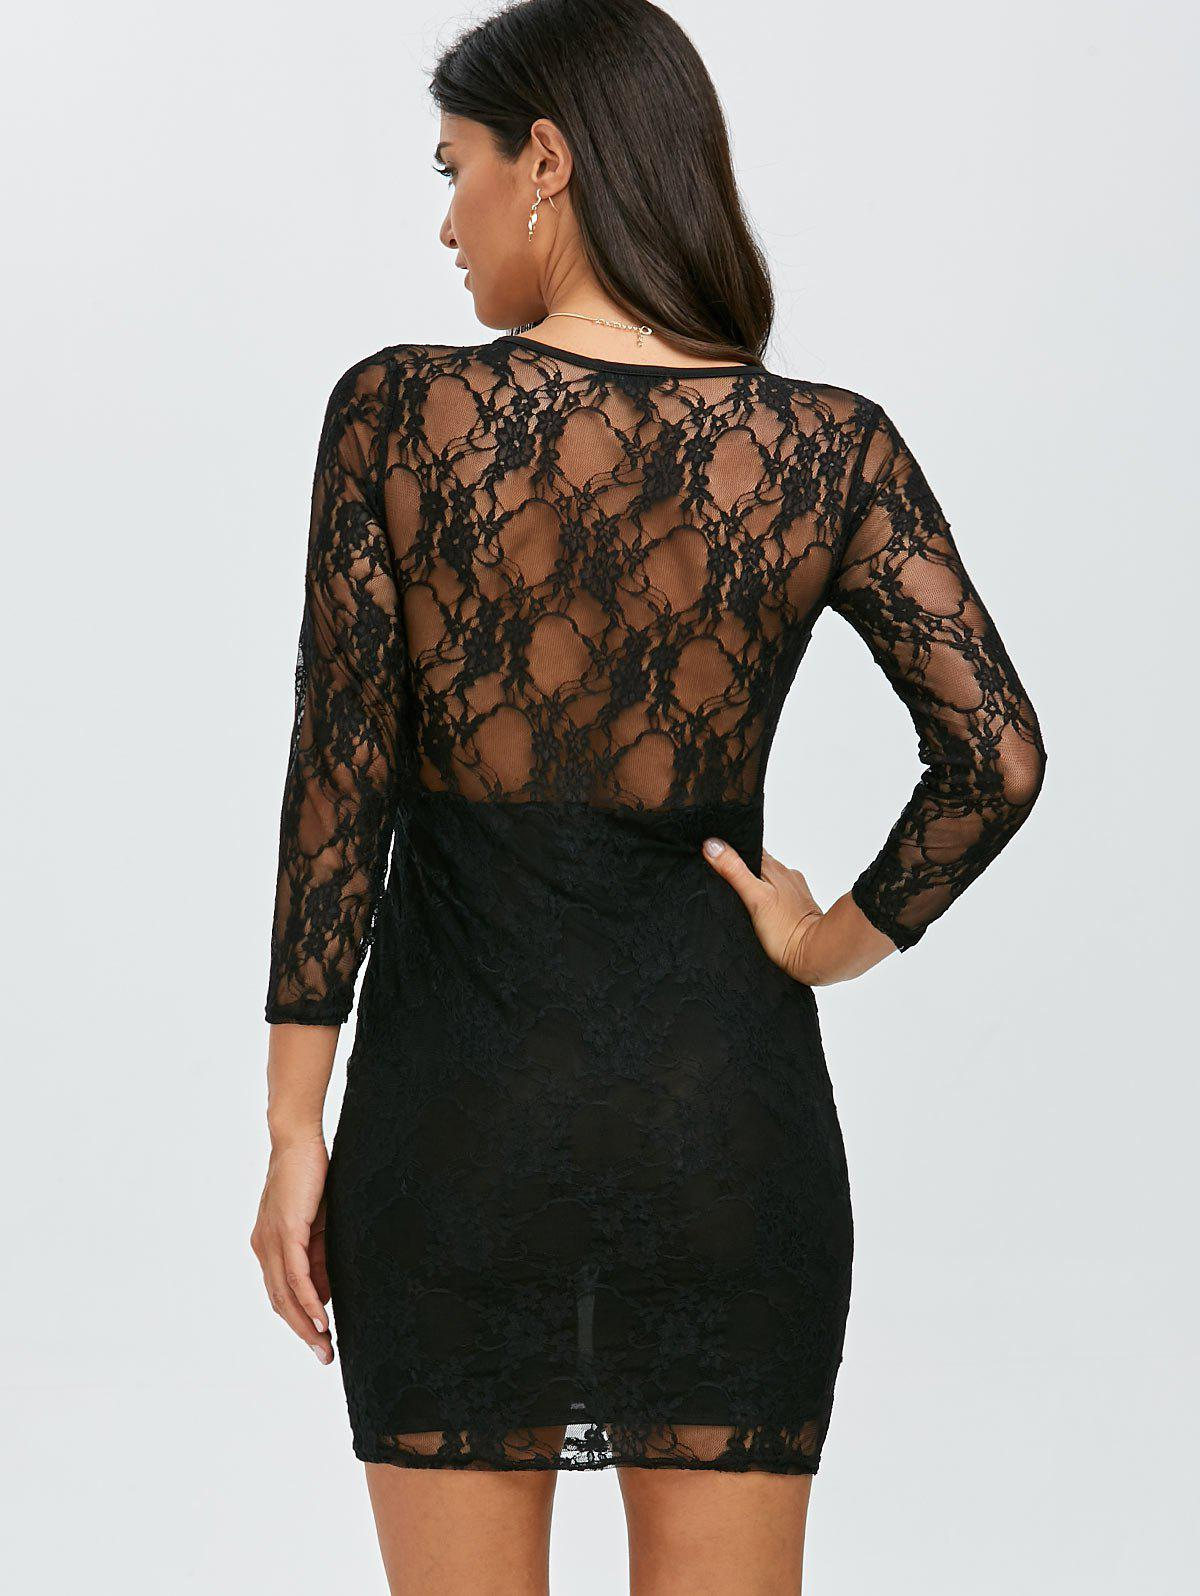 See Thru Mini Lace Dress - BLACK ONE SIZE(FIT SIZE XS TO M)